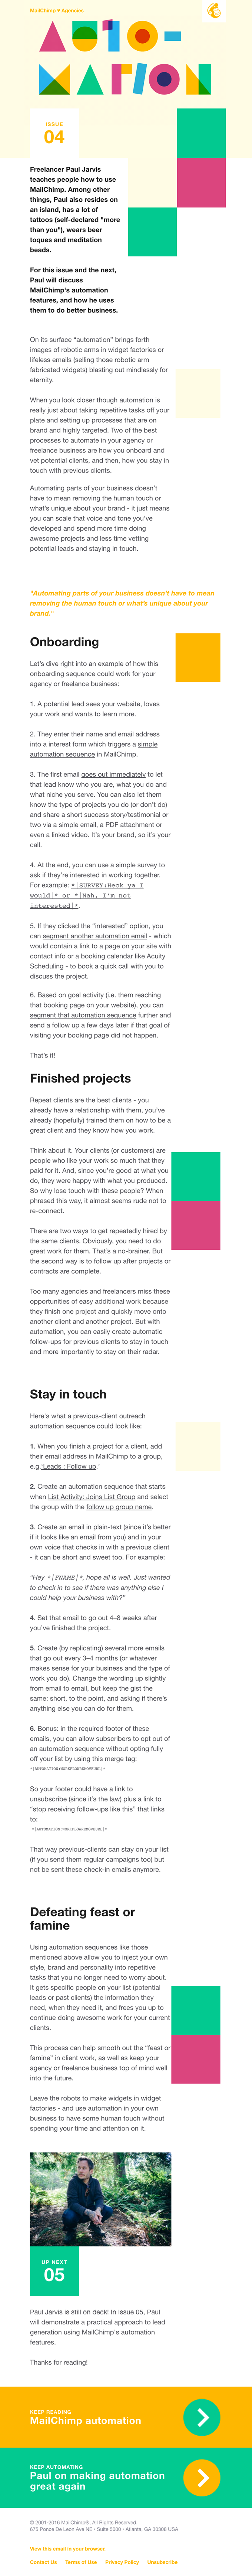 Mailchimp Emails on Really Good Emails